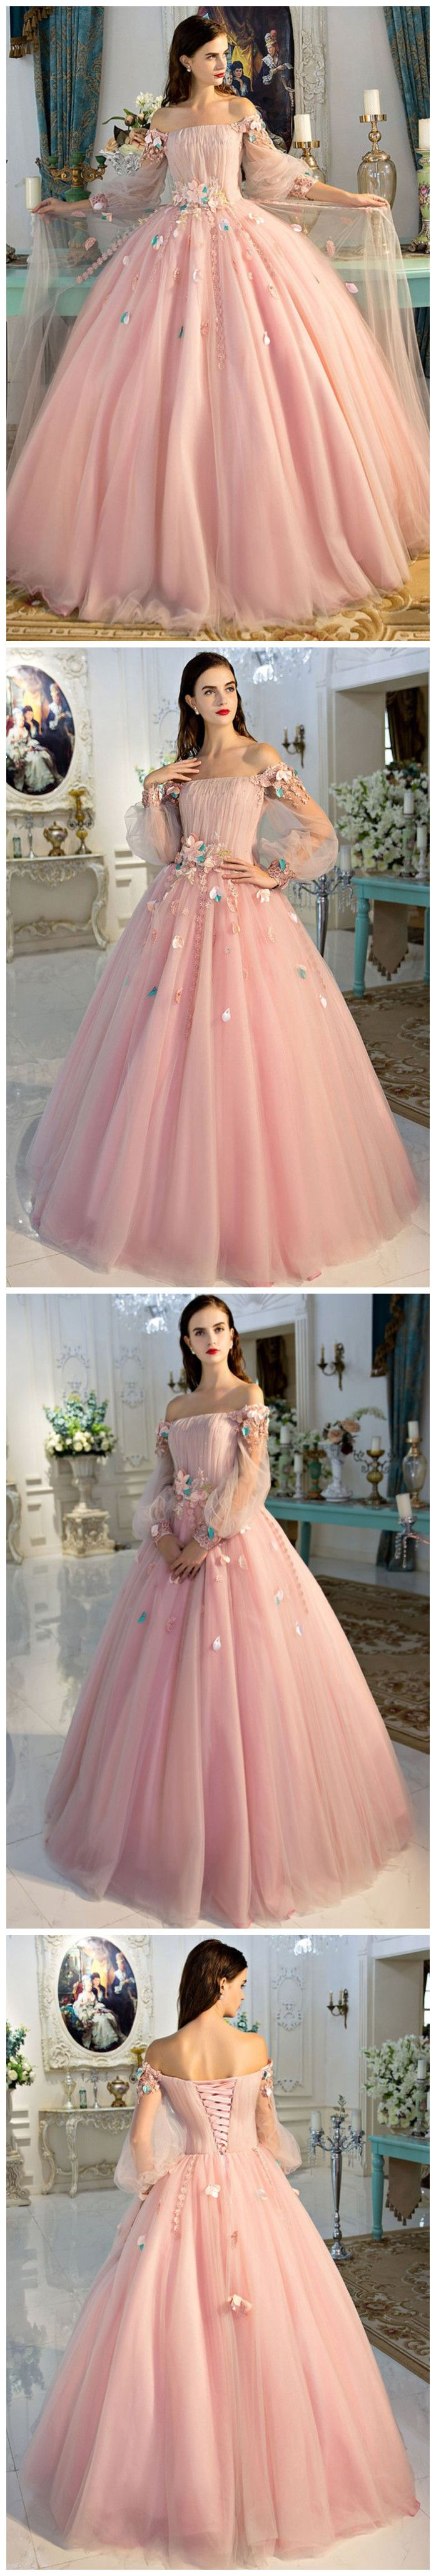 CHIC A-LINE PINK PROM DRESS,OFF-THE-SHOULDER TULLE APPLIQUE LONG SLEEVE EVENING DRESS PARTY DRESS AM169